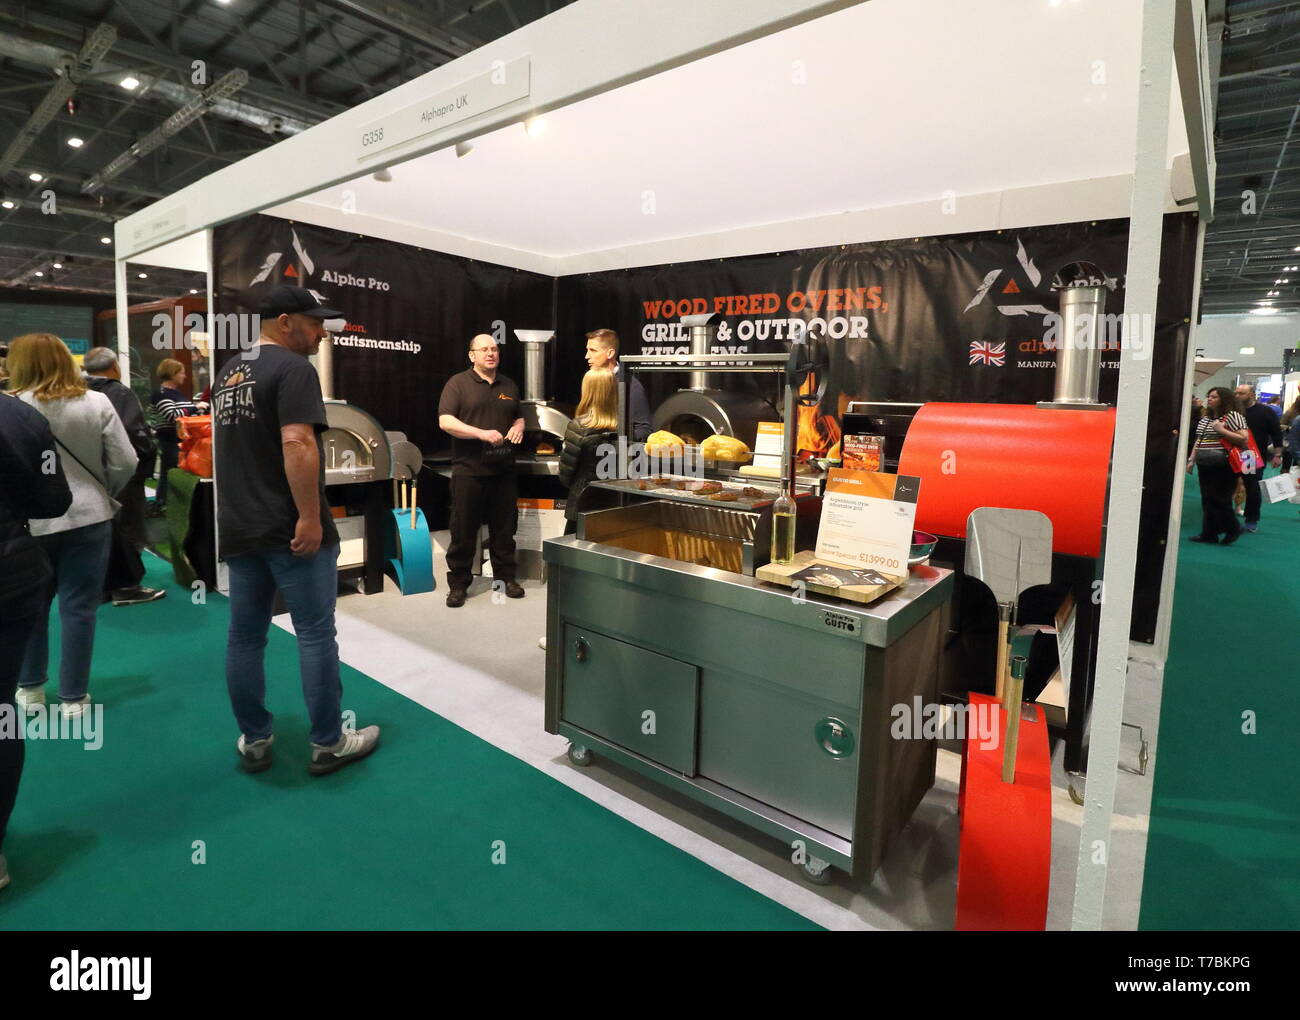 Barbeque Products Seen Displayed During The Exhibition Grand Designs Live Exhibition Sponsored By Anglian Home Improvements With More Than 500 Exhibitors In Zones For Sustainable Technology Self Build Design Grand Technology Interiors Kitchens